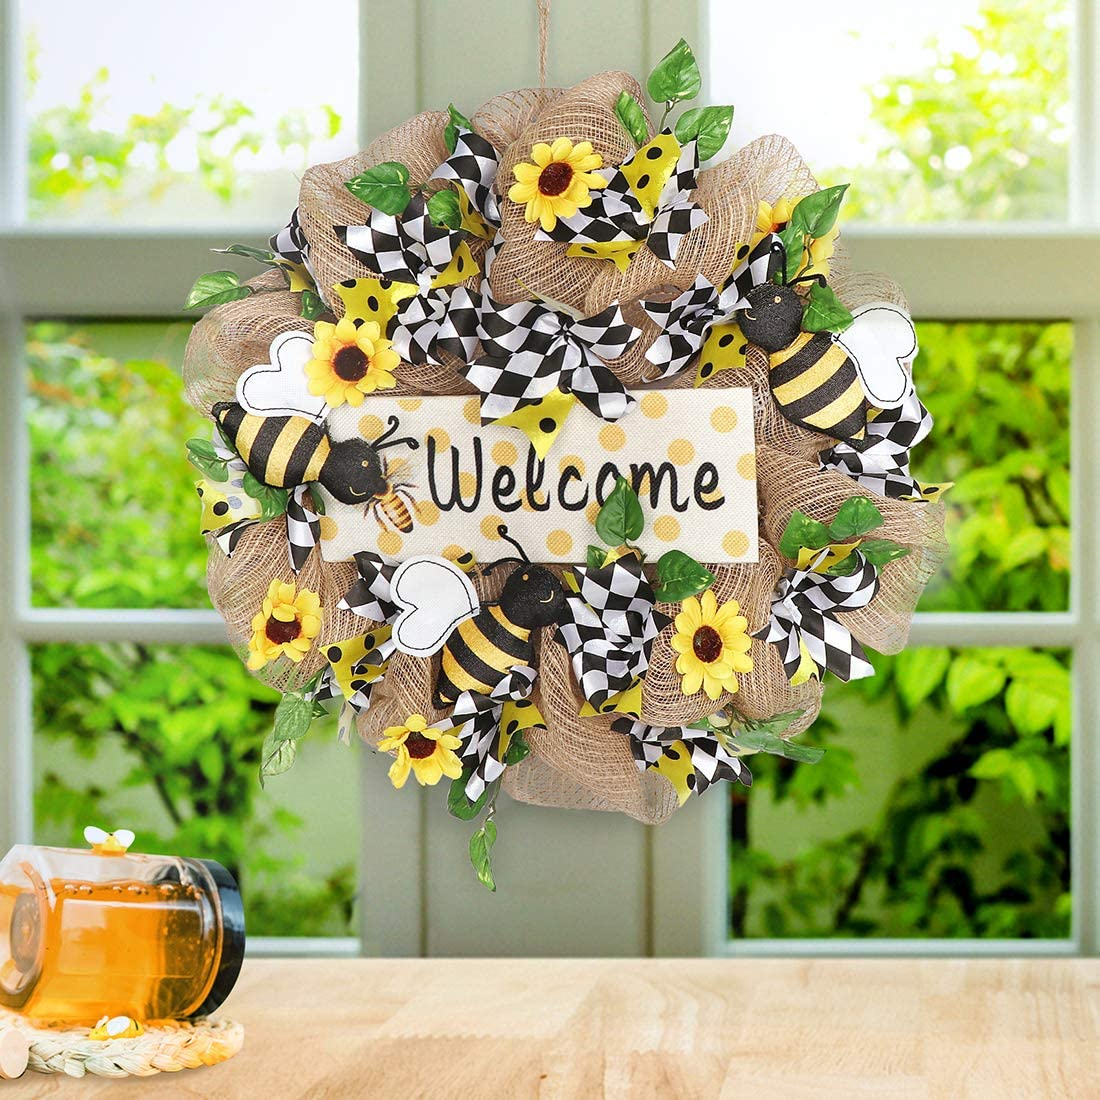 QTDLXFA Burlap Wreath 15 Inches, Artificial Sunflowers & Bee Welcome Sign with Bowknot, Spring Summer Autumn Decoration, Front Door Wall Window Wreath, Rustic Outdoor Home Decor (Yellow & White)